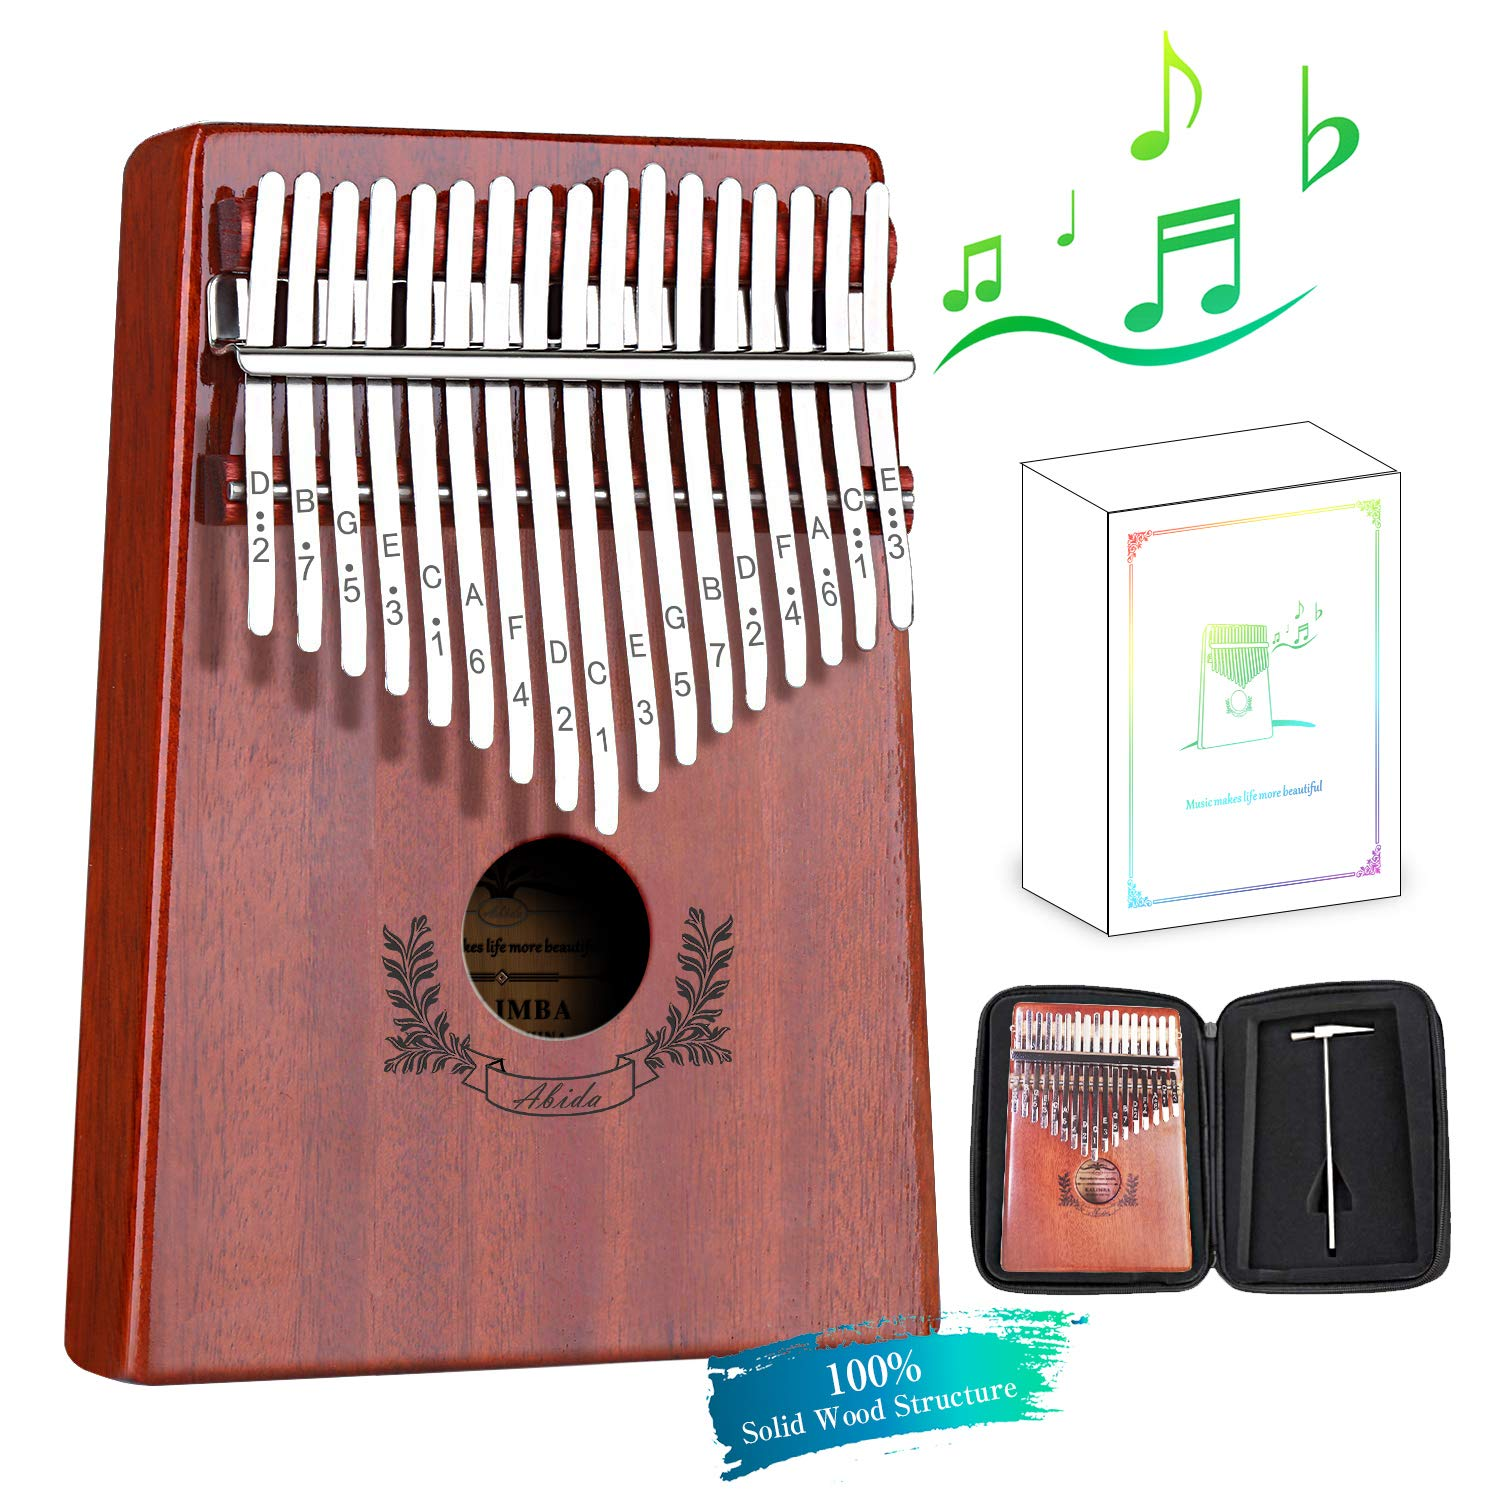 Abida Kalimba 17 Keys Thumb Piano EVA Waterproof Case Study Instruction Tuning Hammer, Solid Finger Piano Mahogany Body Portable Musical Instrument Gifts for Kids and Adult Beginners by Abida